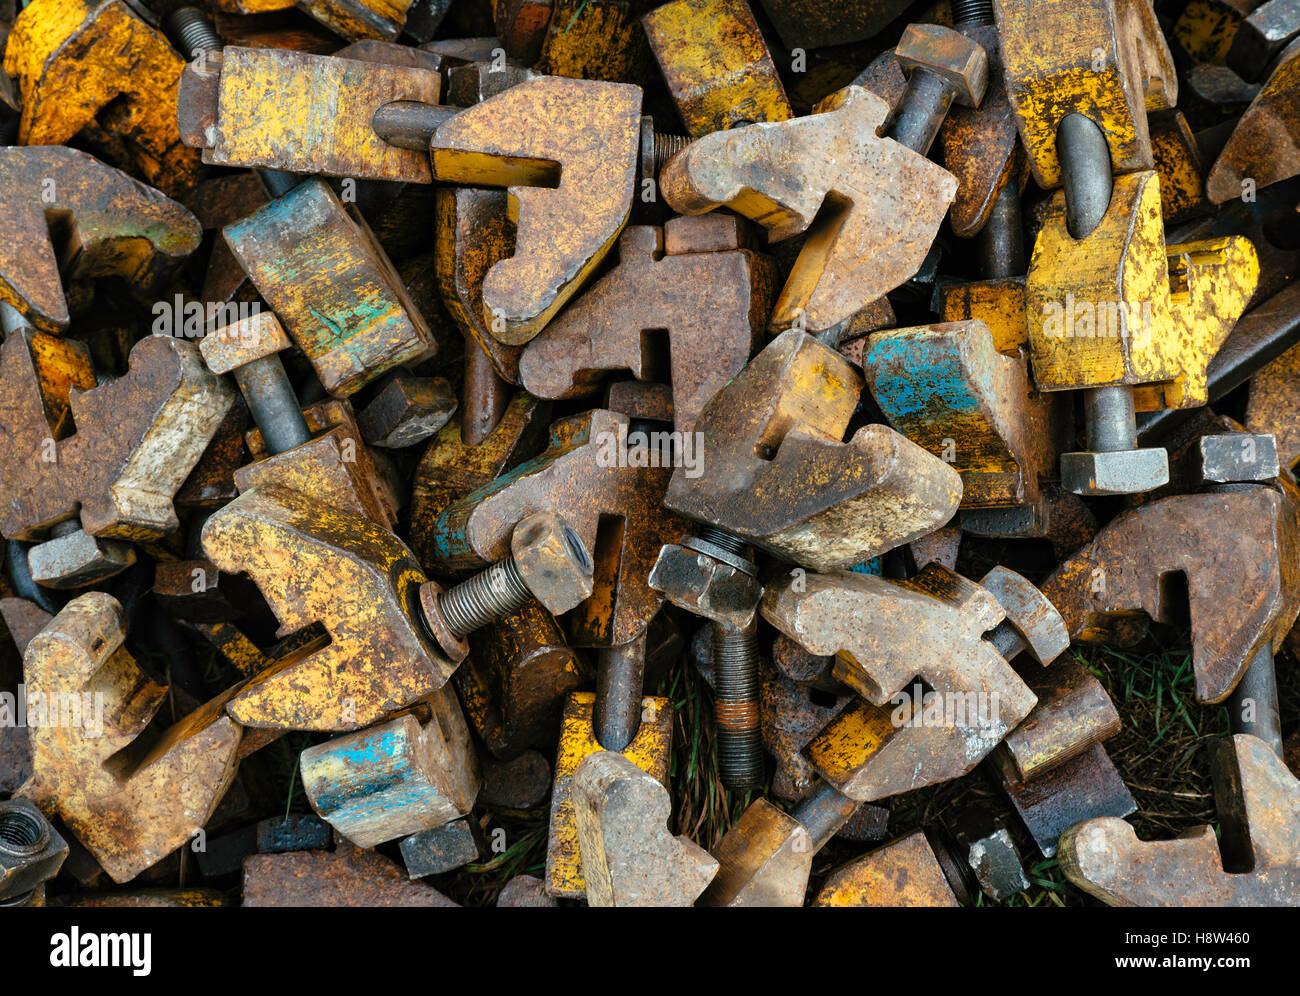 Pile of metal clamps used for rail track maintenance - Stock Image